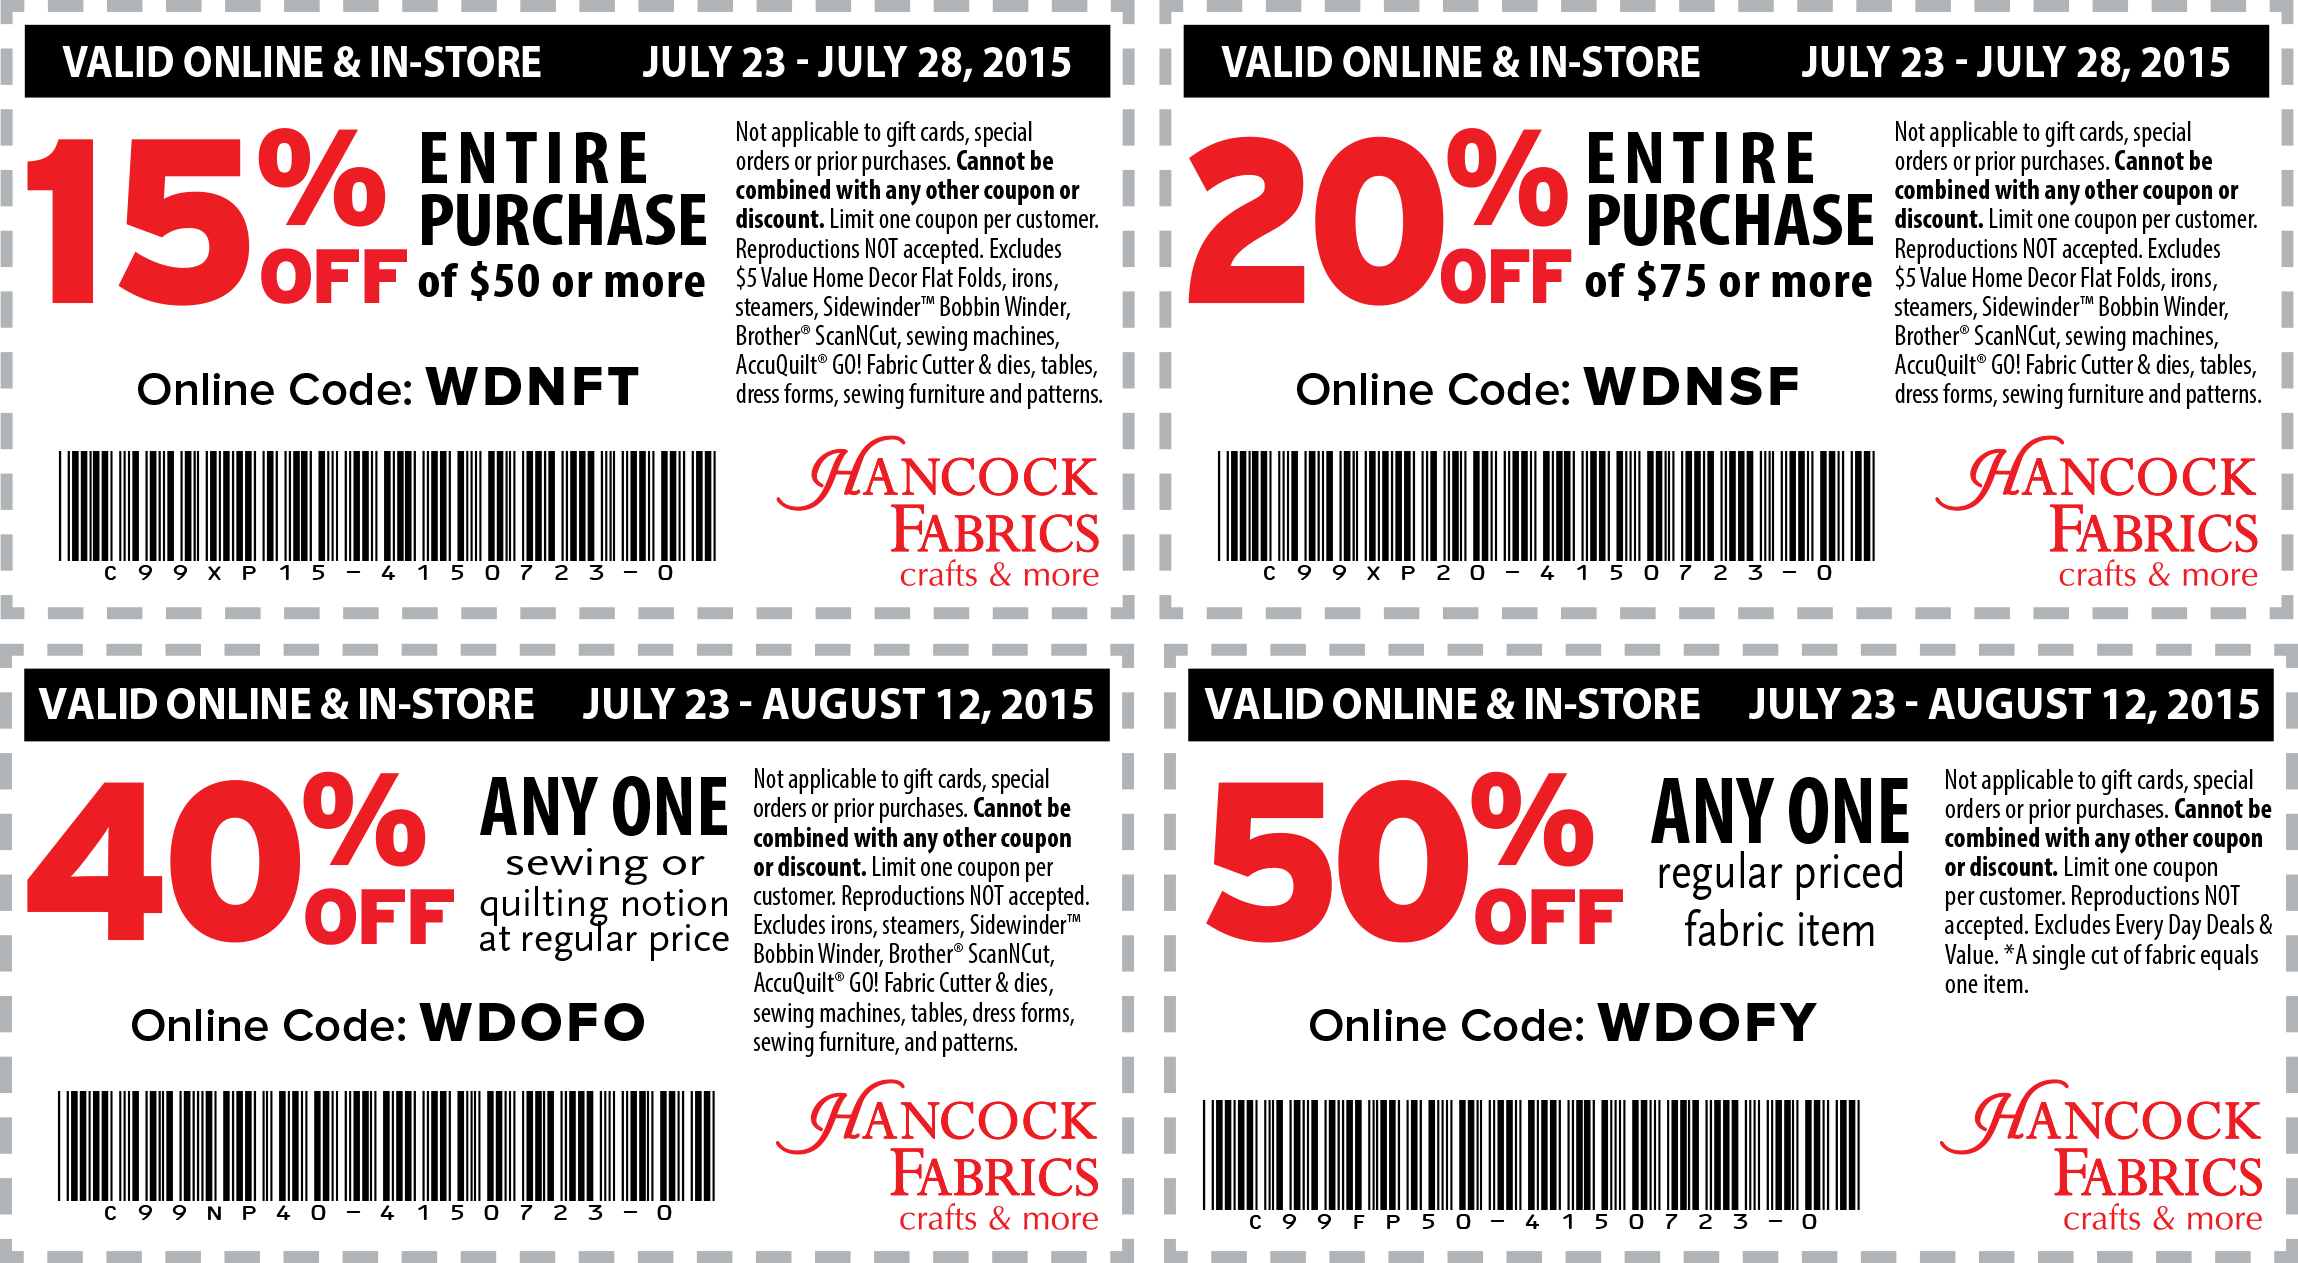 Hancock Fabrics Coupon December 2016 50% off a single item & more at Hancock Fabrics, or online via promo code WDOFY